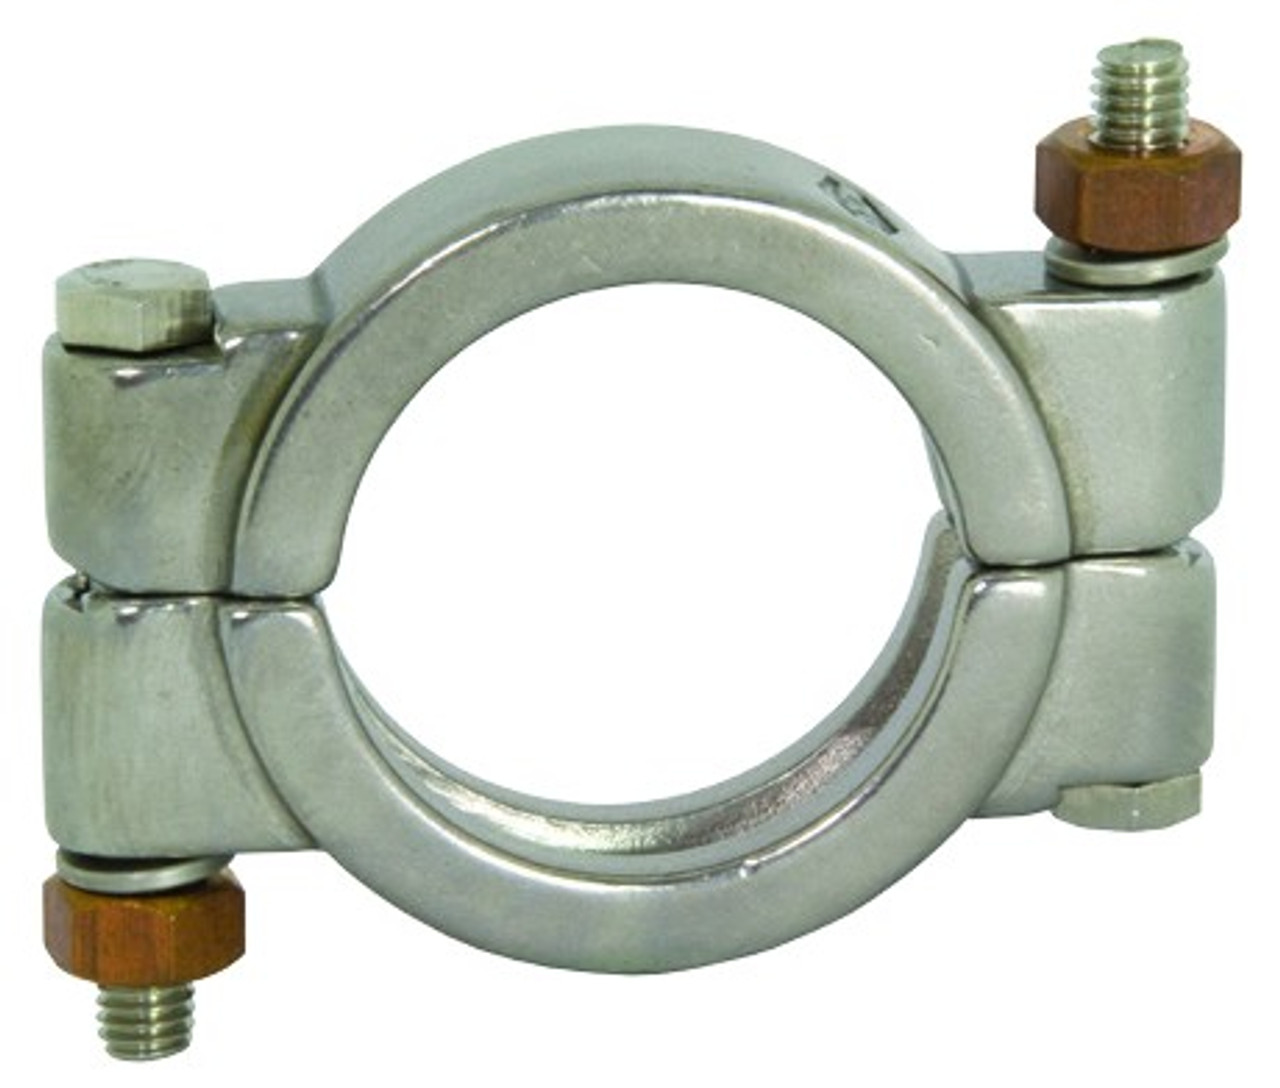 Bolted Clamps